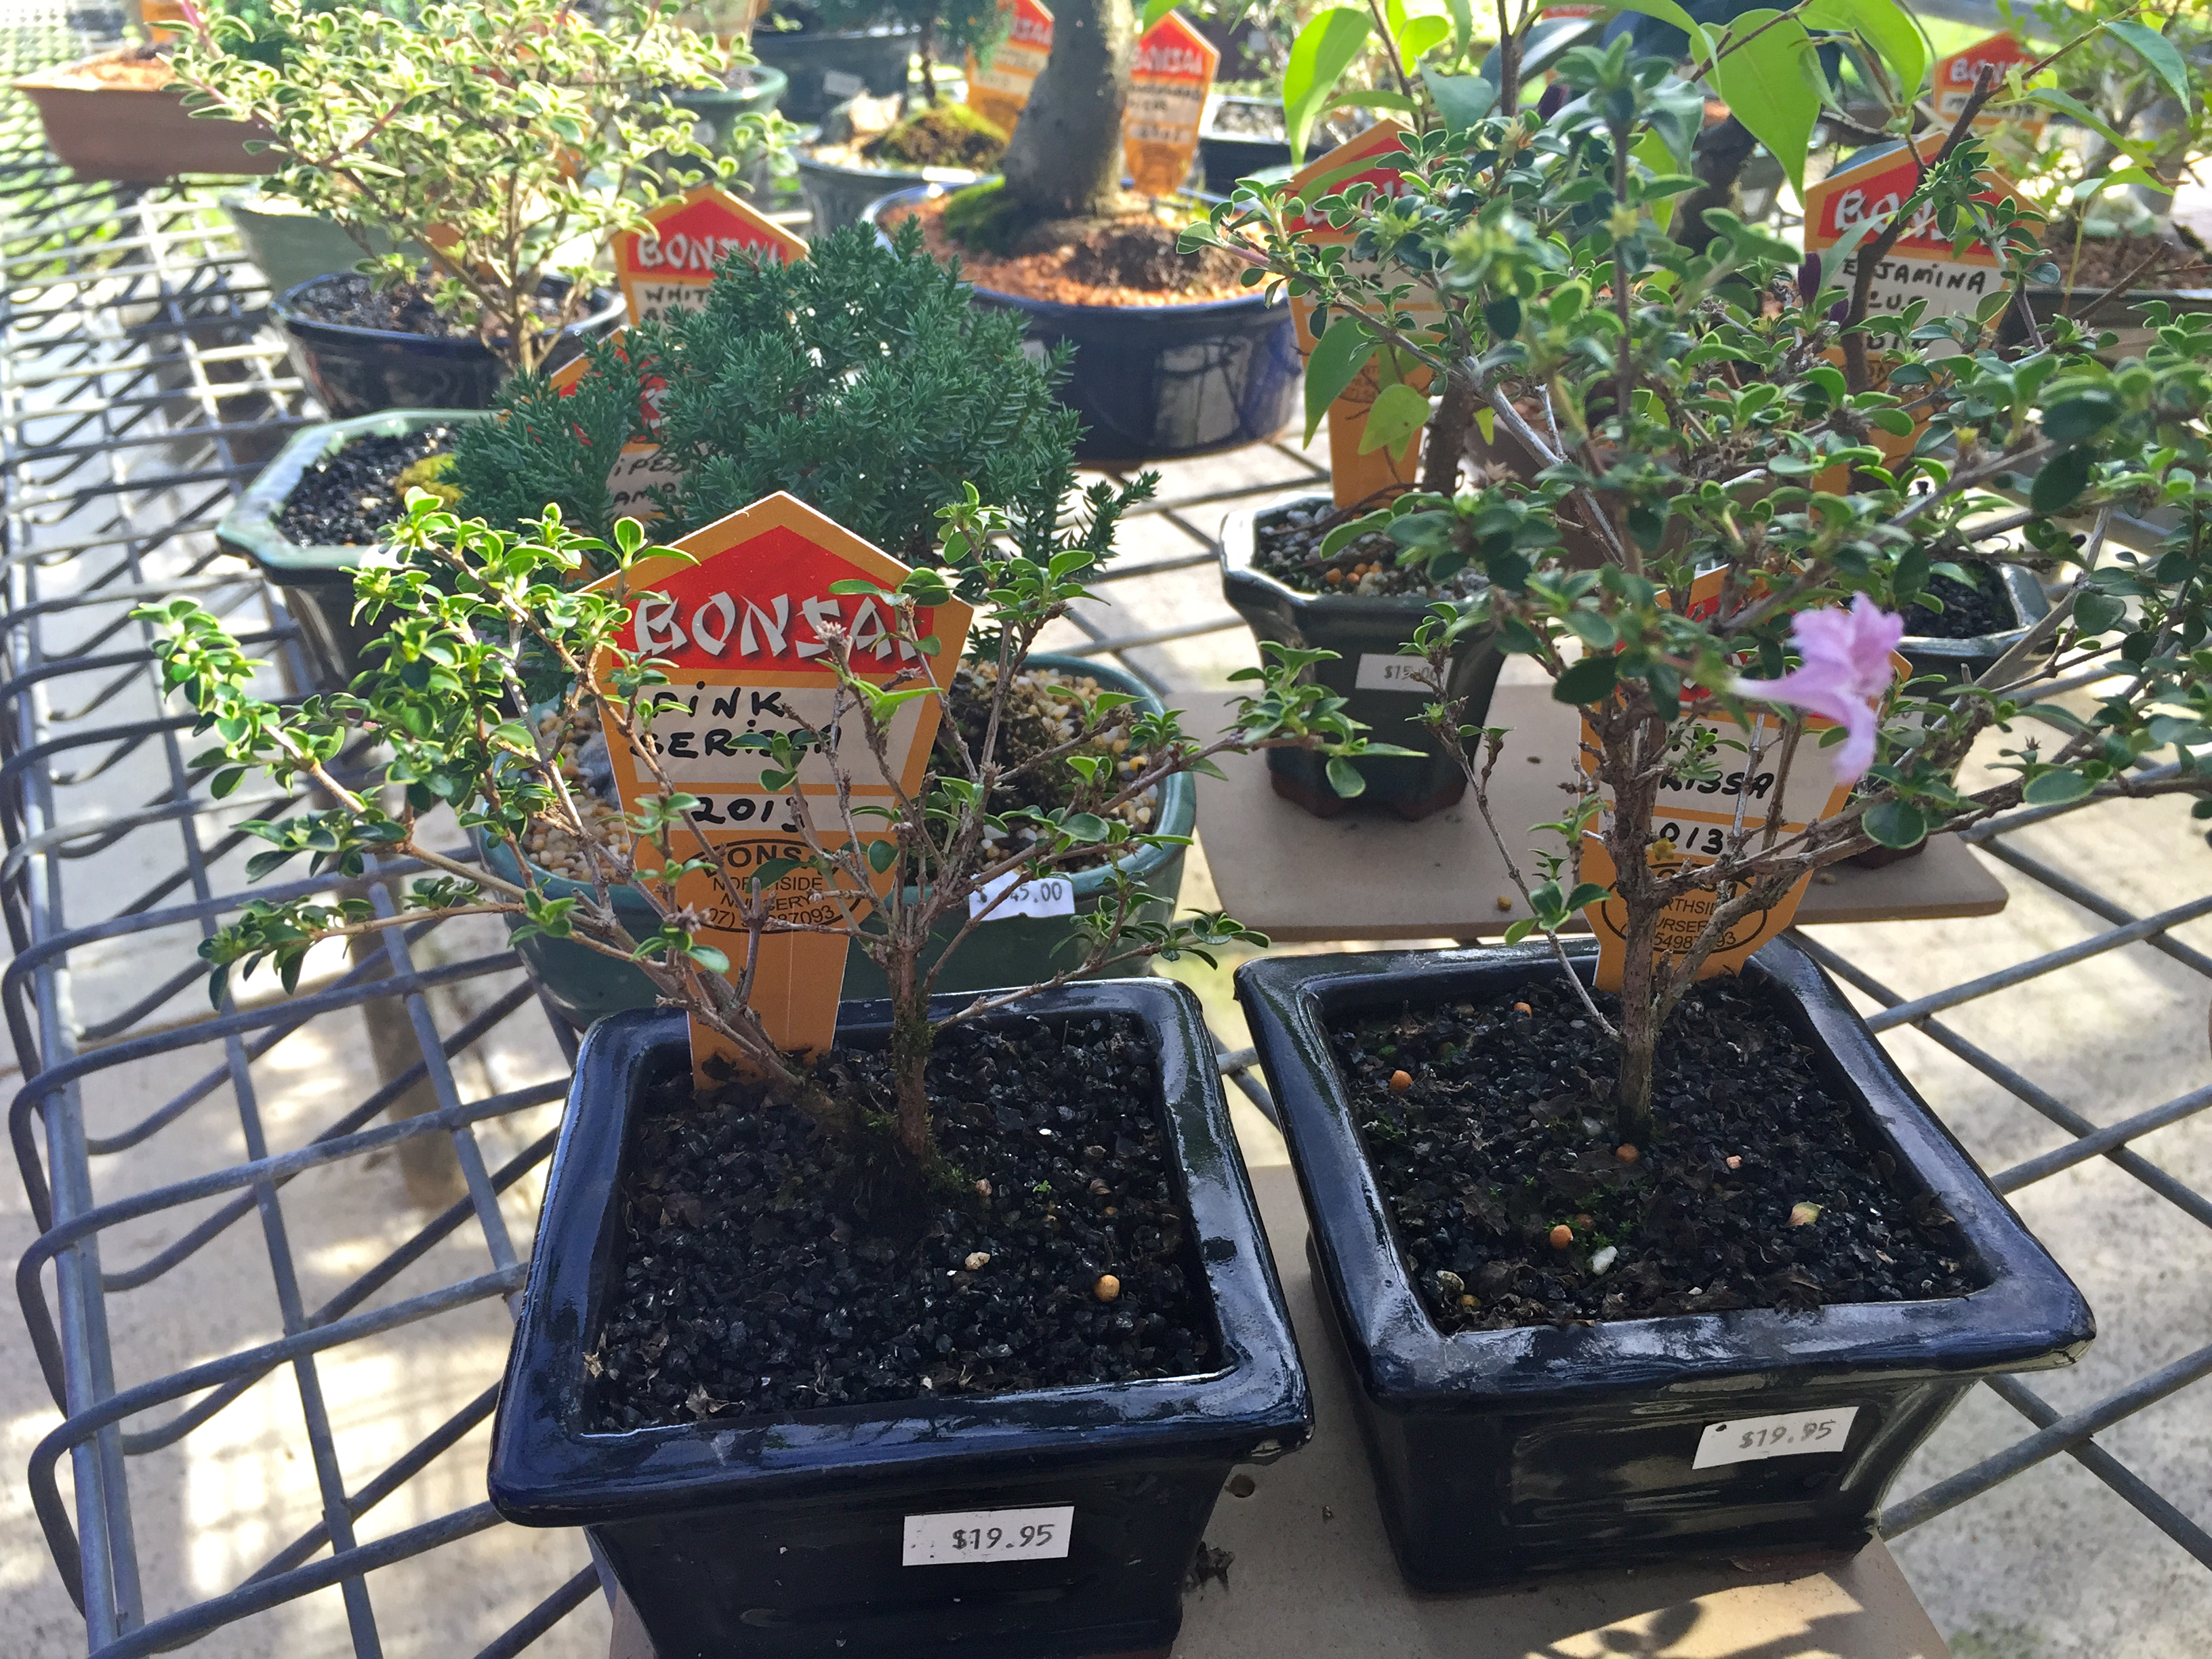 These small Bonsai plants start at $20 at Bonsai Northside Nursery. © GreenSocks